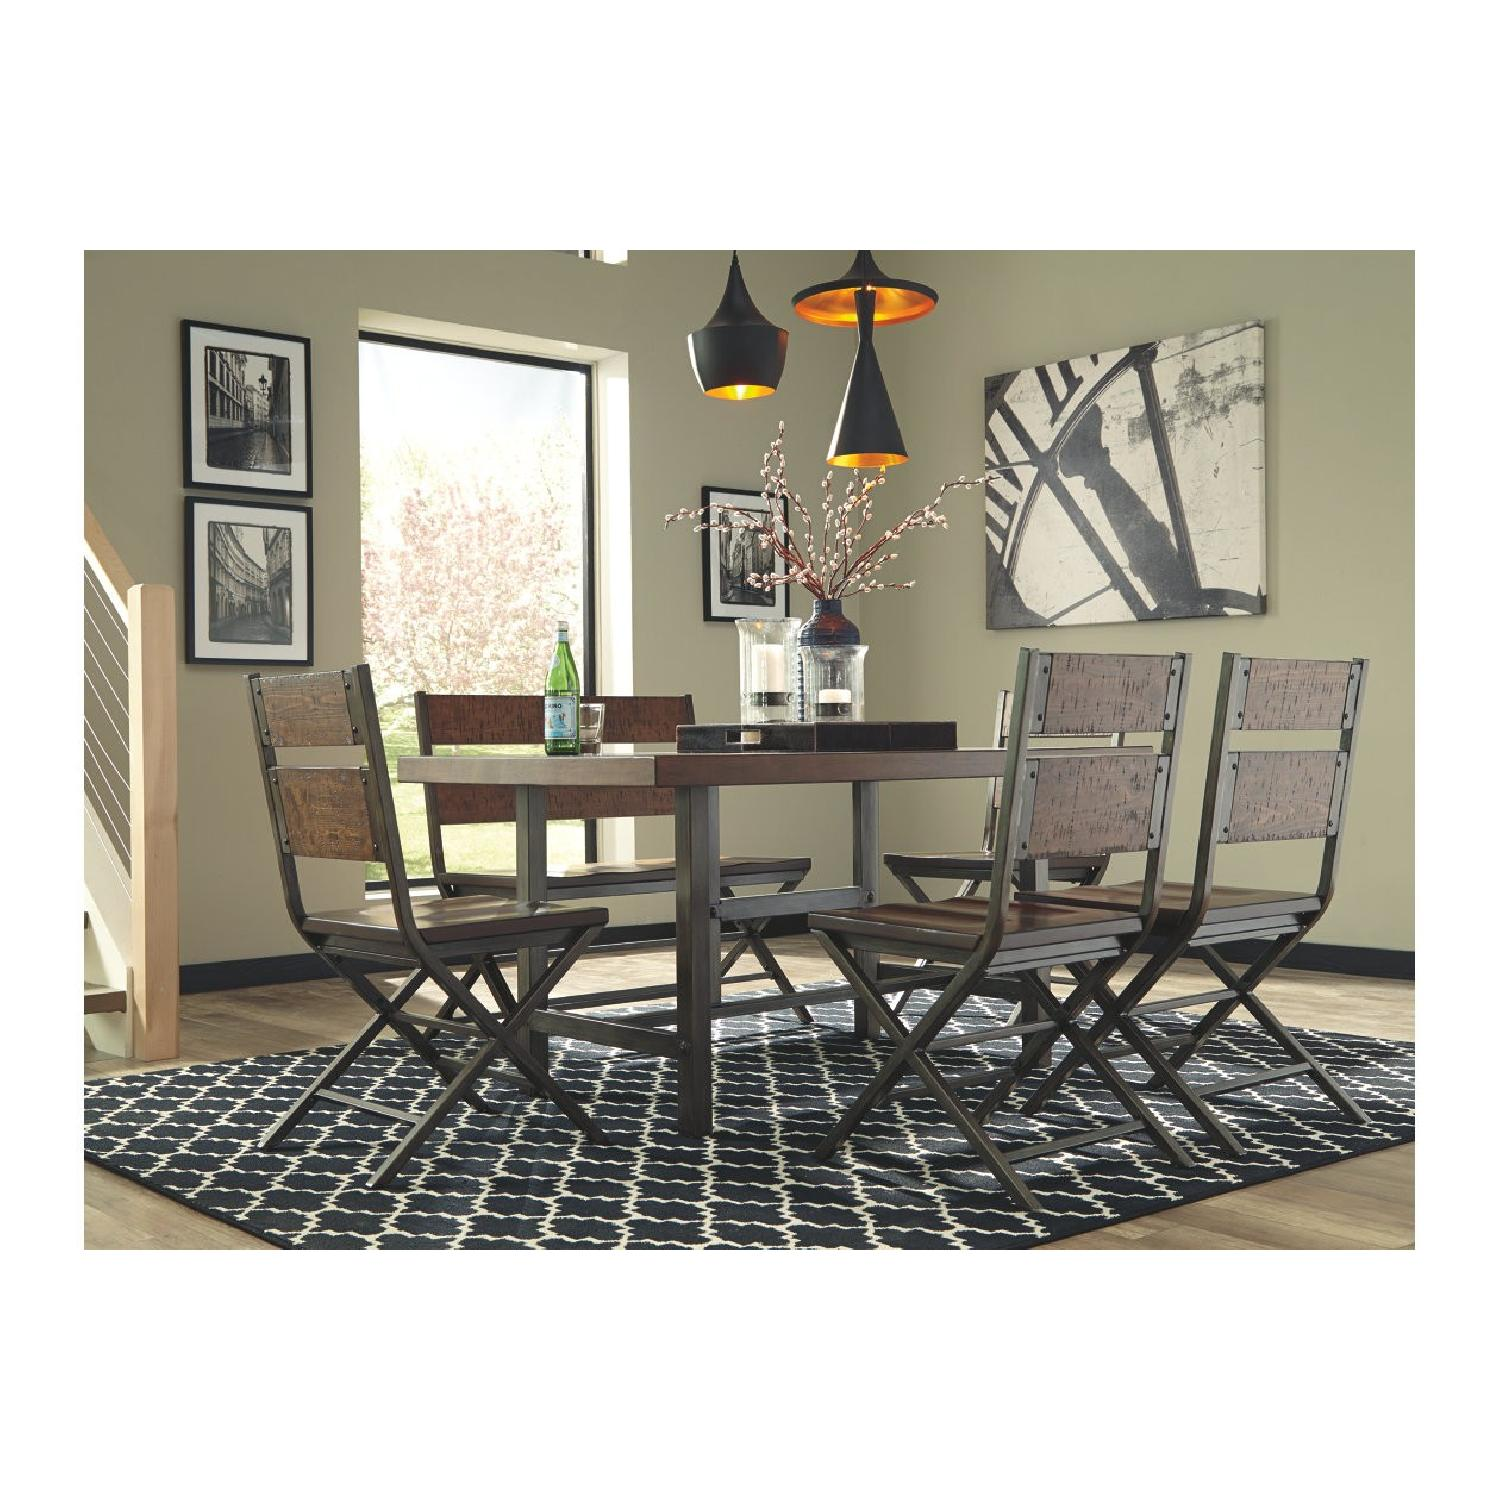 Ashley Distressed Counter Farm Table w/ Bench + 4 Chairs-1